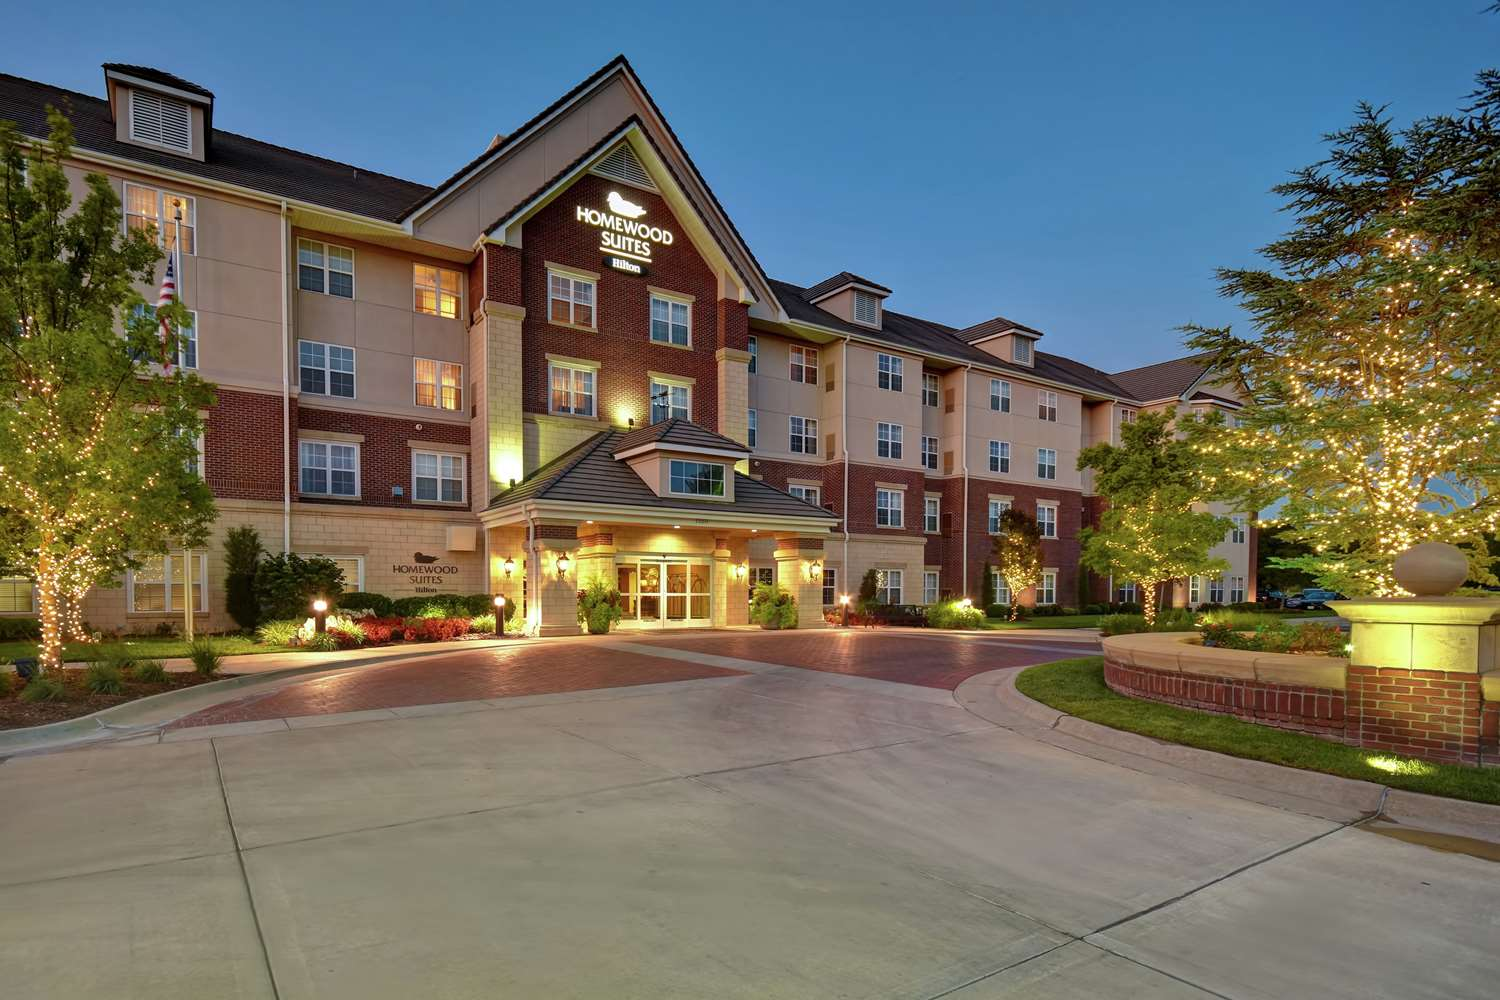 Homewood Suites by Hilton @ The Waterfront